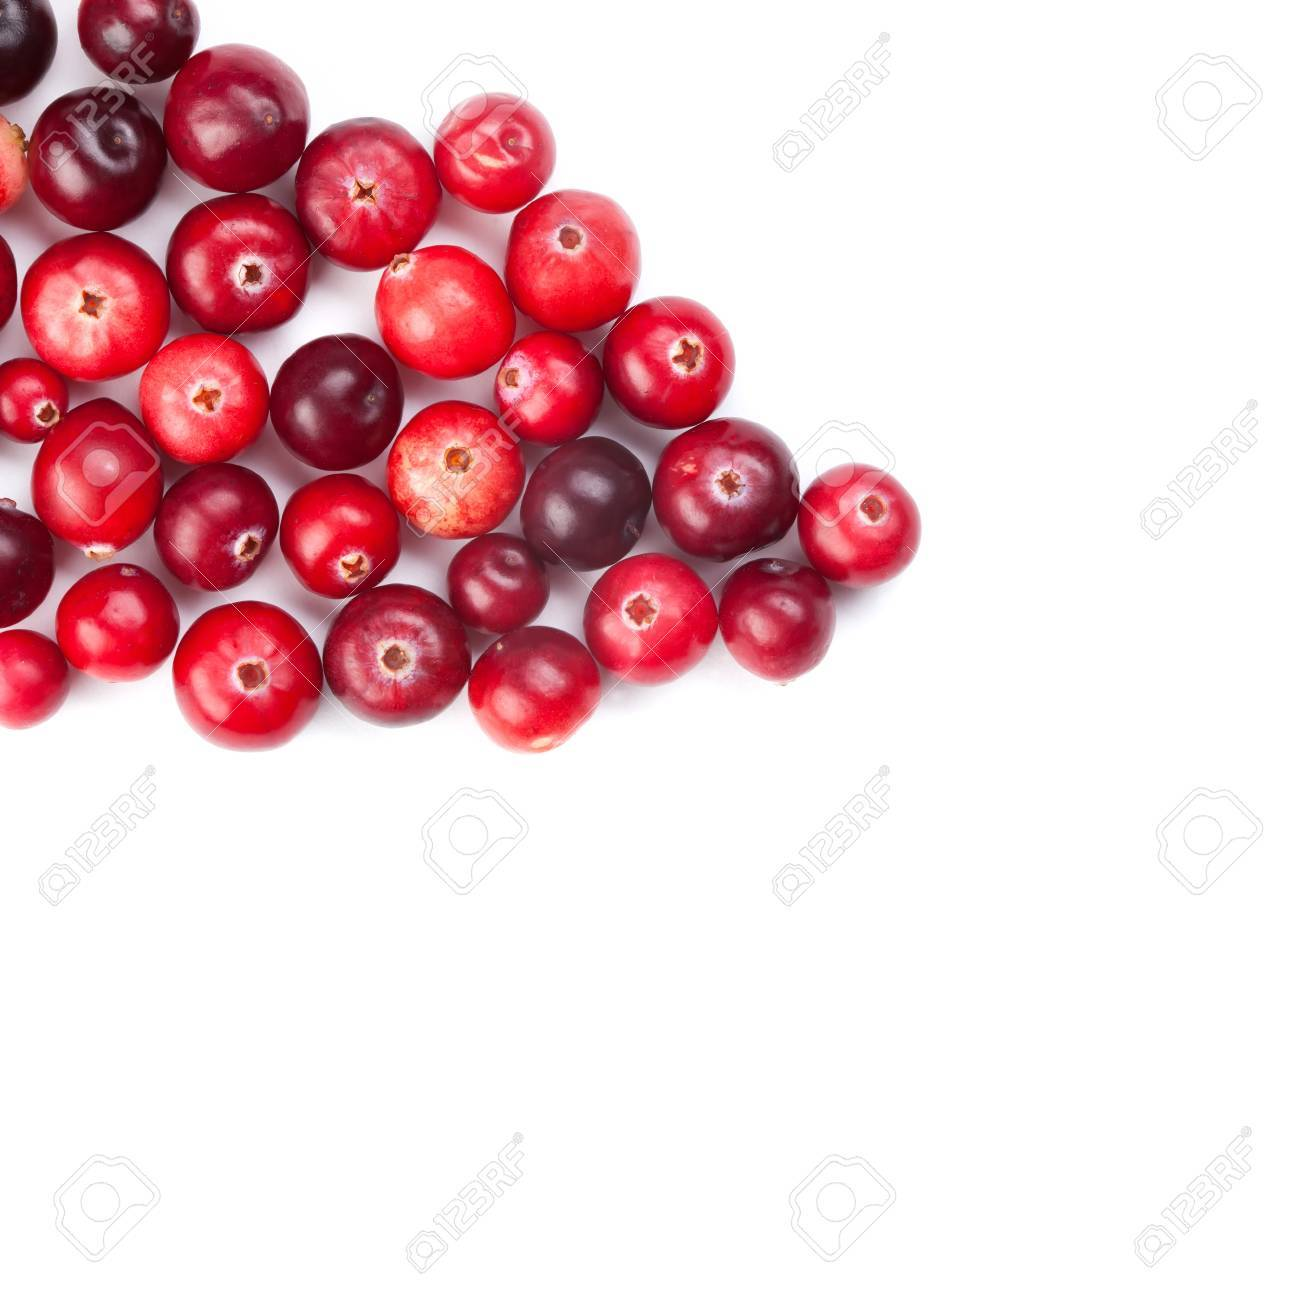 Red, ripe cranberries macro view on white background - 47100229